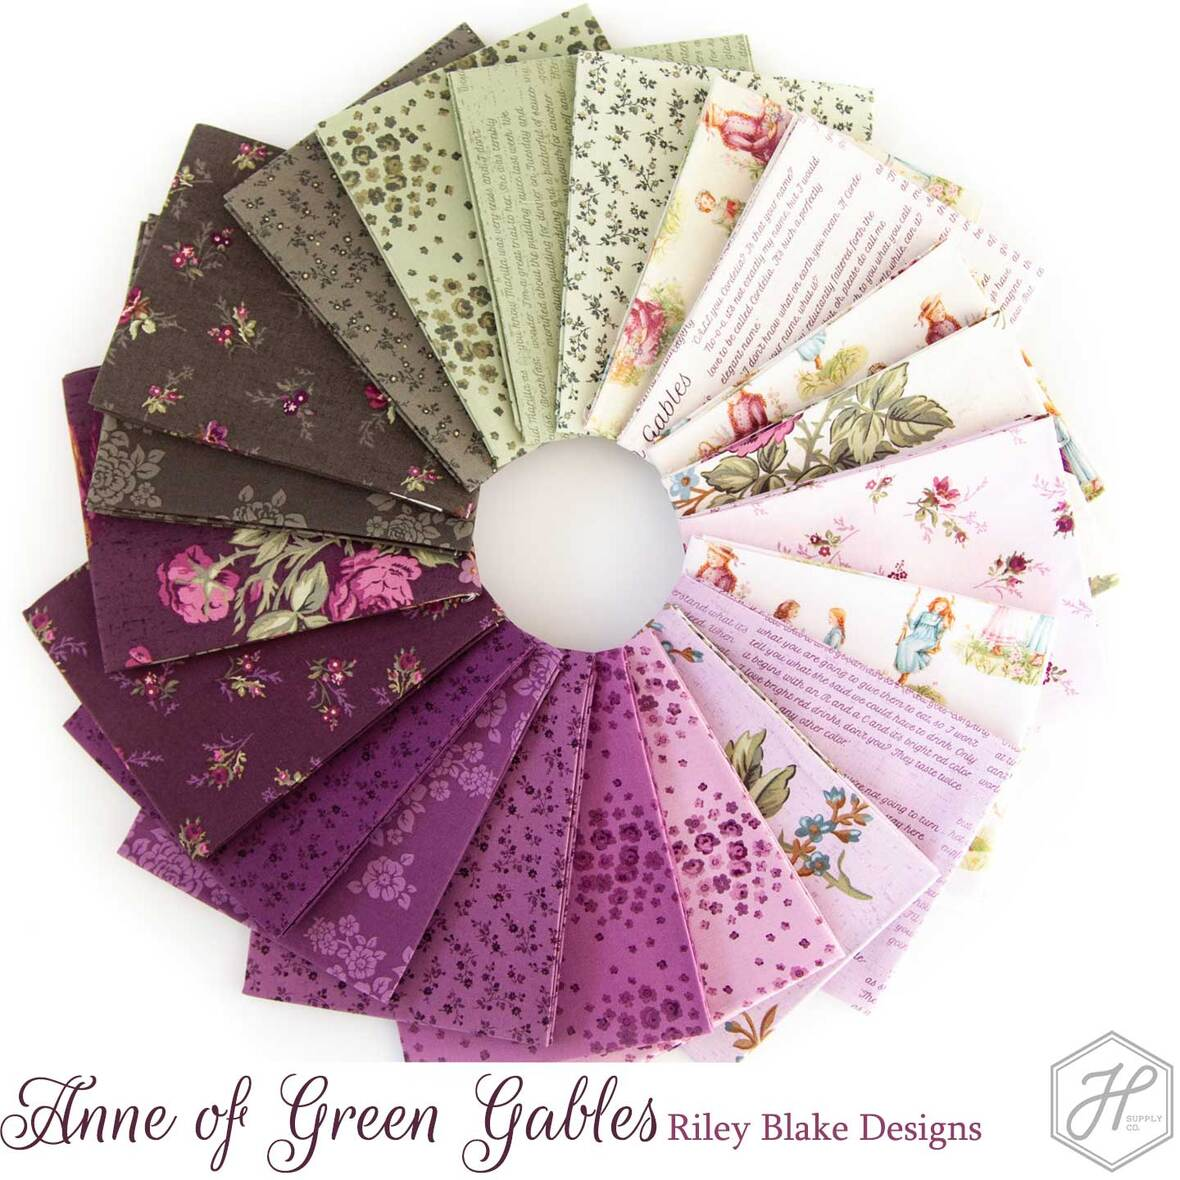 Anne-of-Green-Gables-Fabric-Riley-Blake-at-Hawthorne-Supply-Co